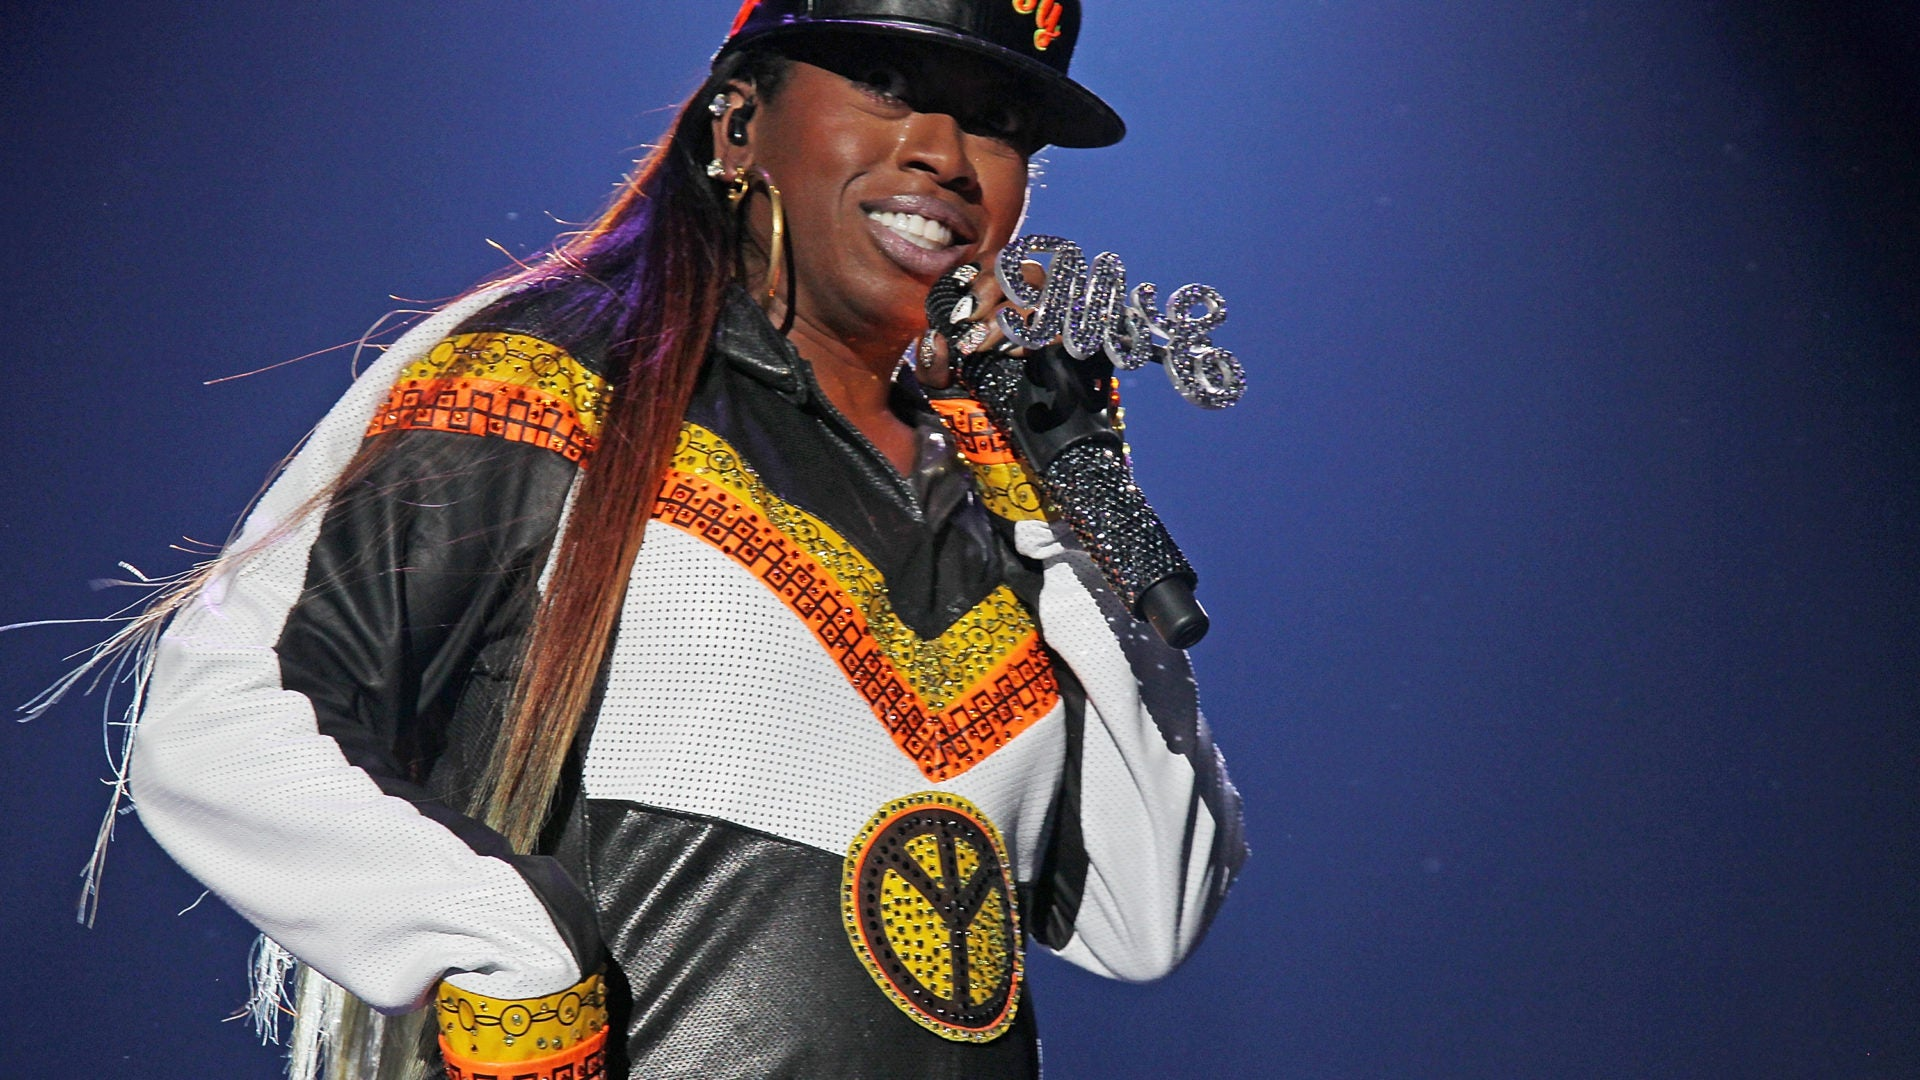 Long Live The Queen: An Ode To The Supa Dupa Fly 20th Anniversary of Missy Elliott's Debut